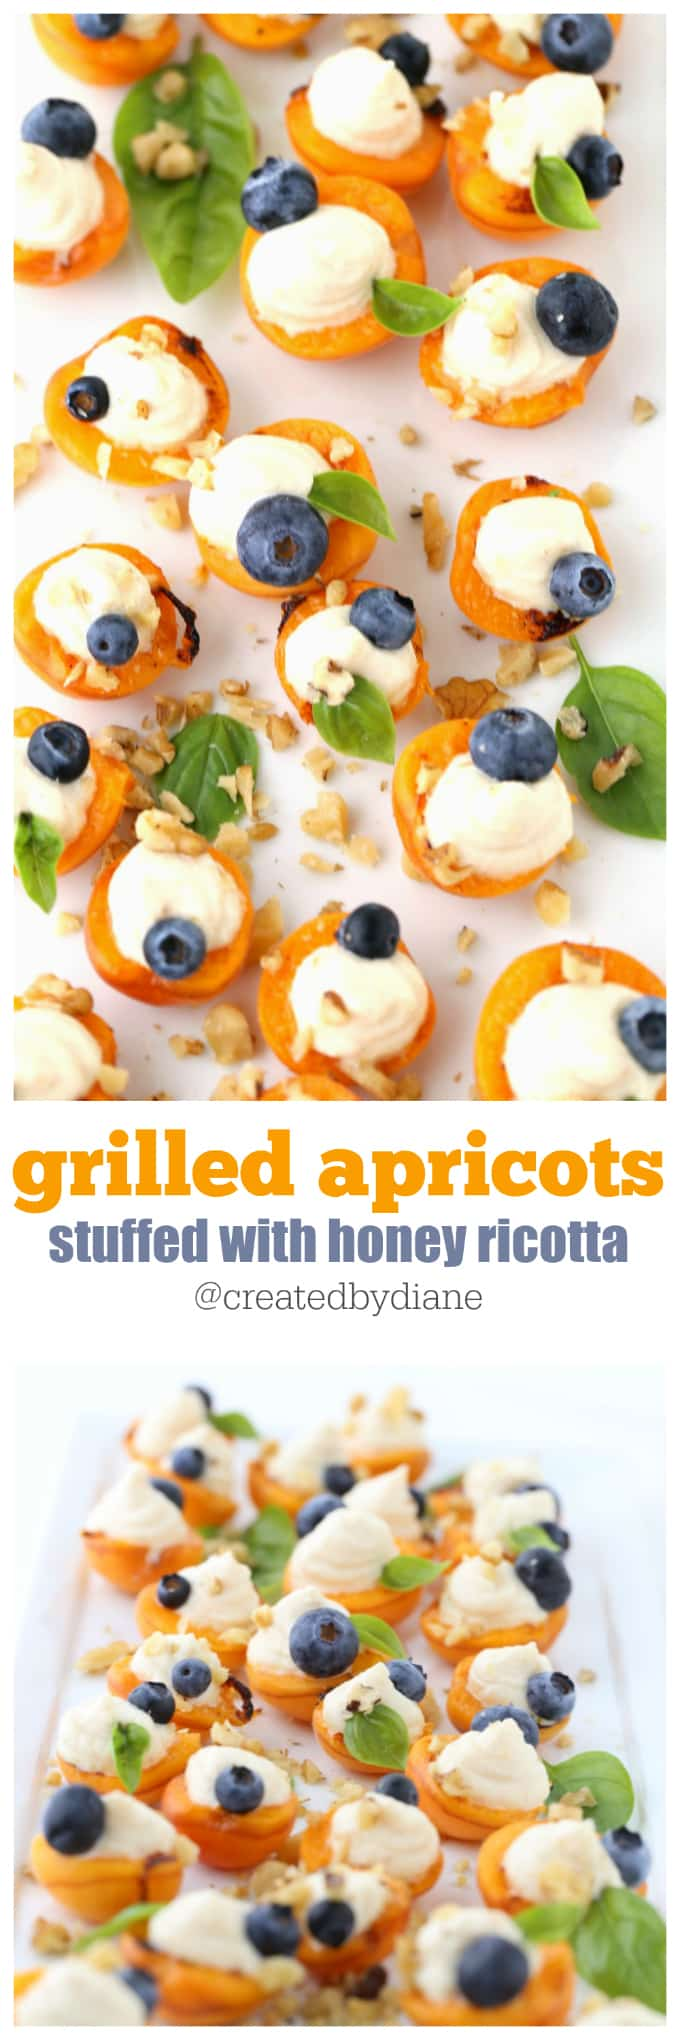 grilled apricots stuffed with honey ricotta recipe @createdbydiane